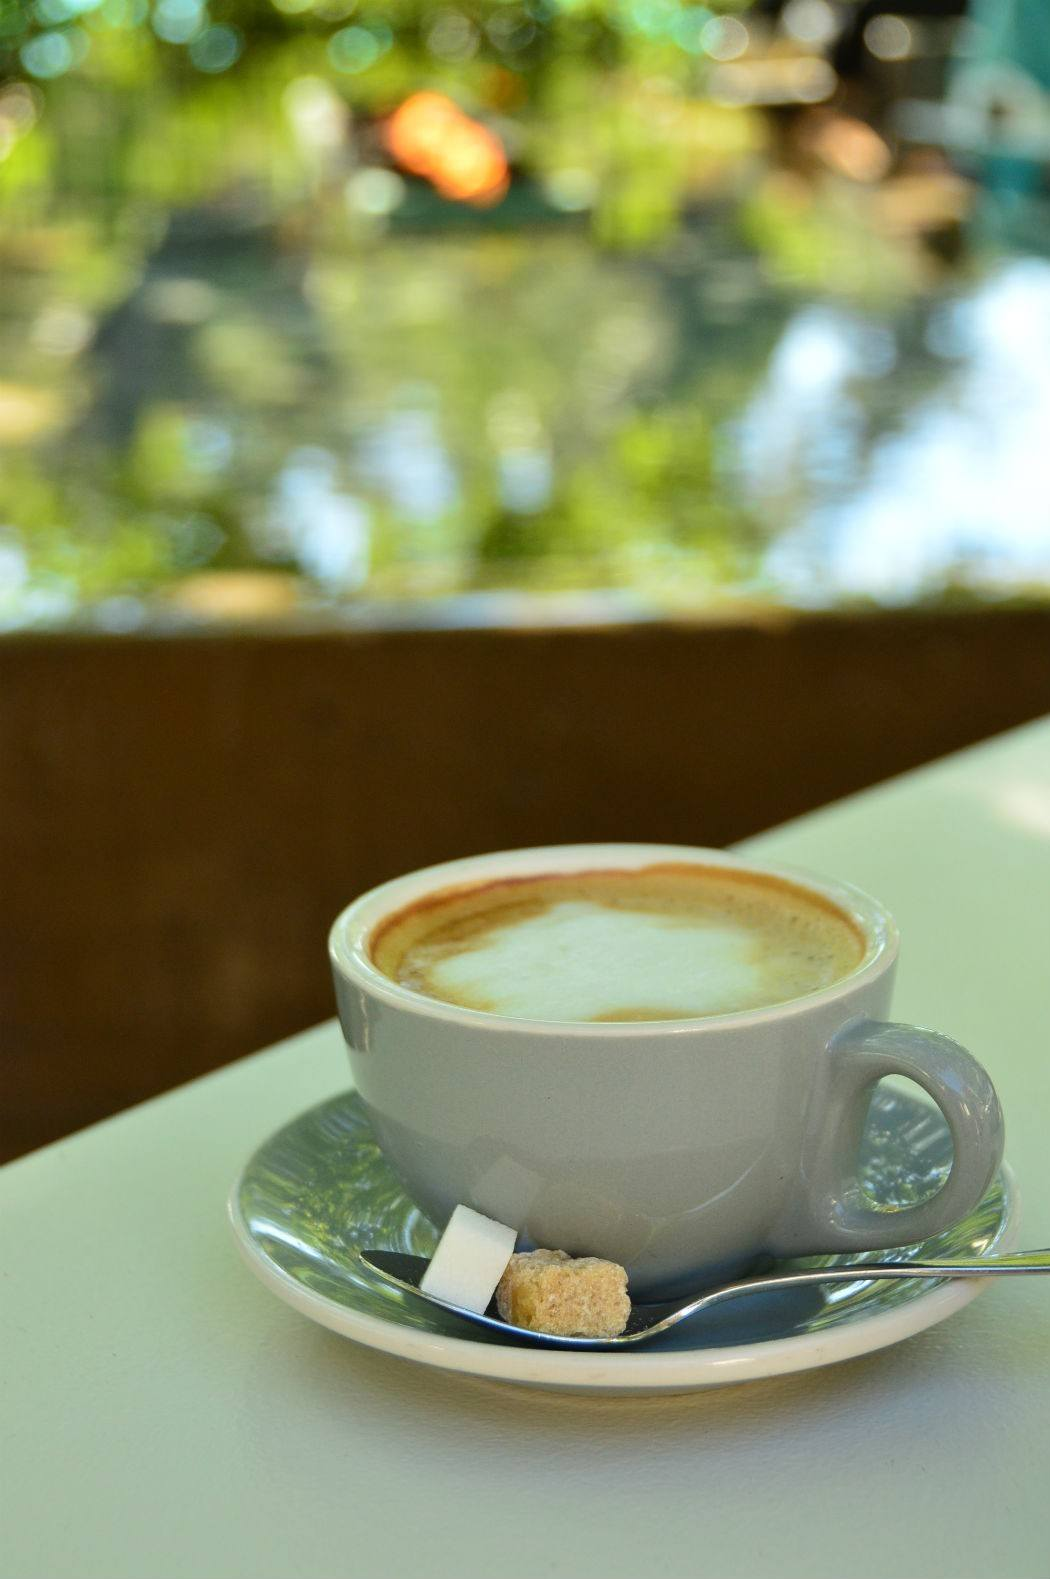 Cup of white coffee in a saucer with pool in background